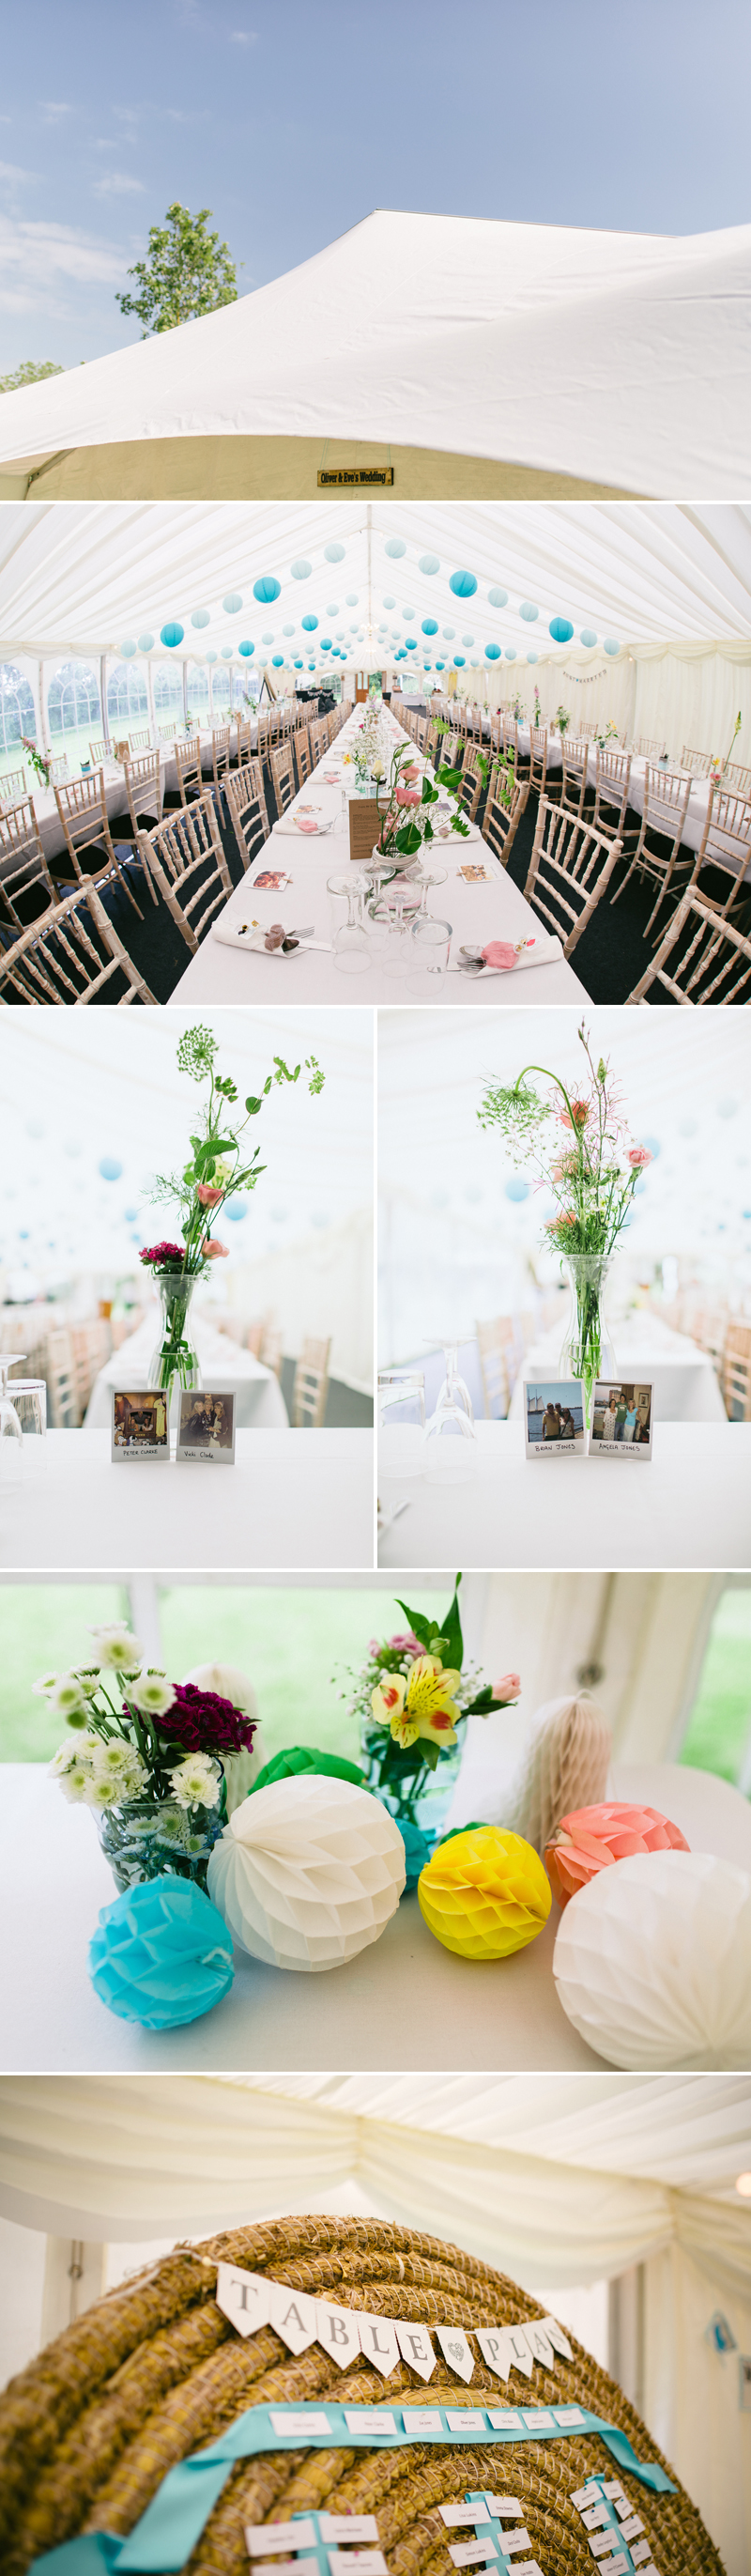 rustic country decorations